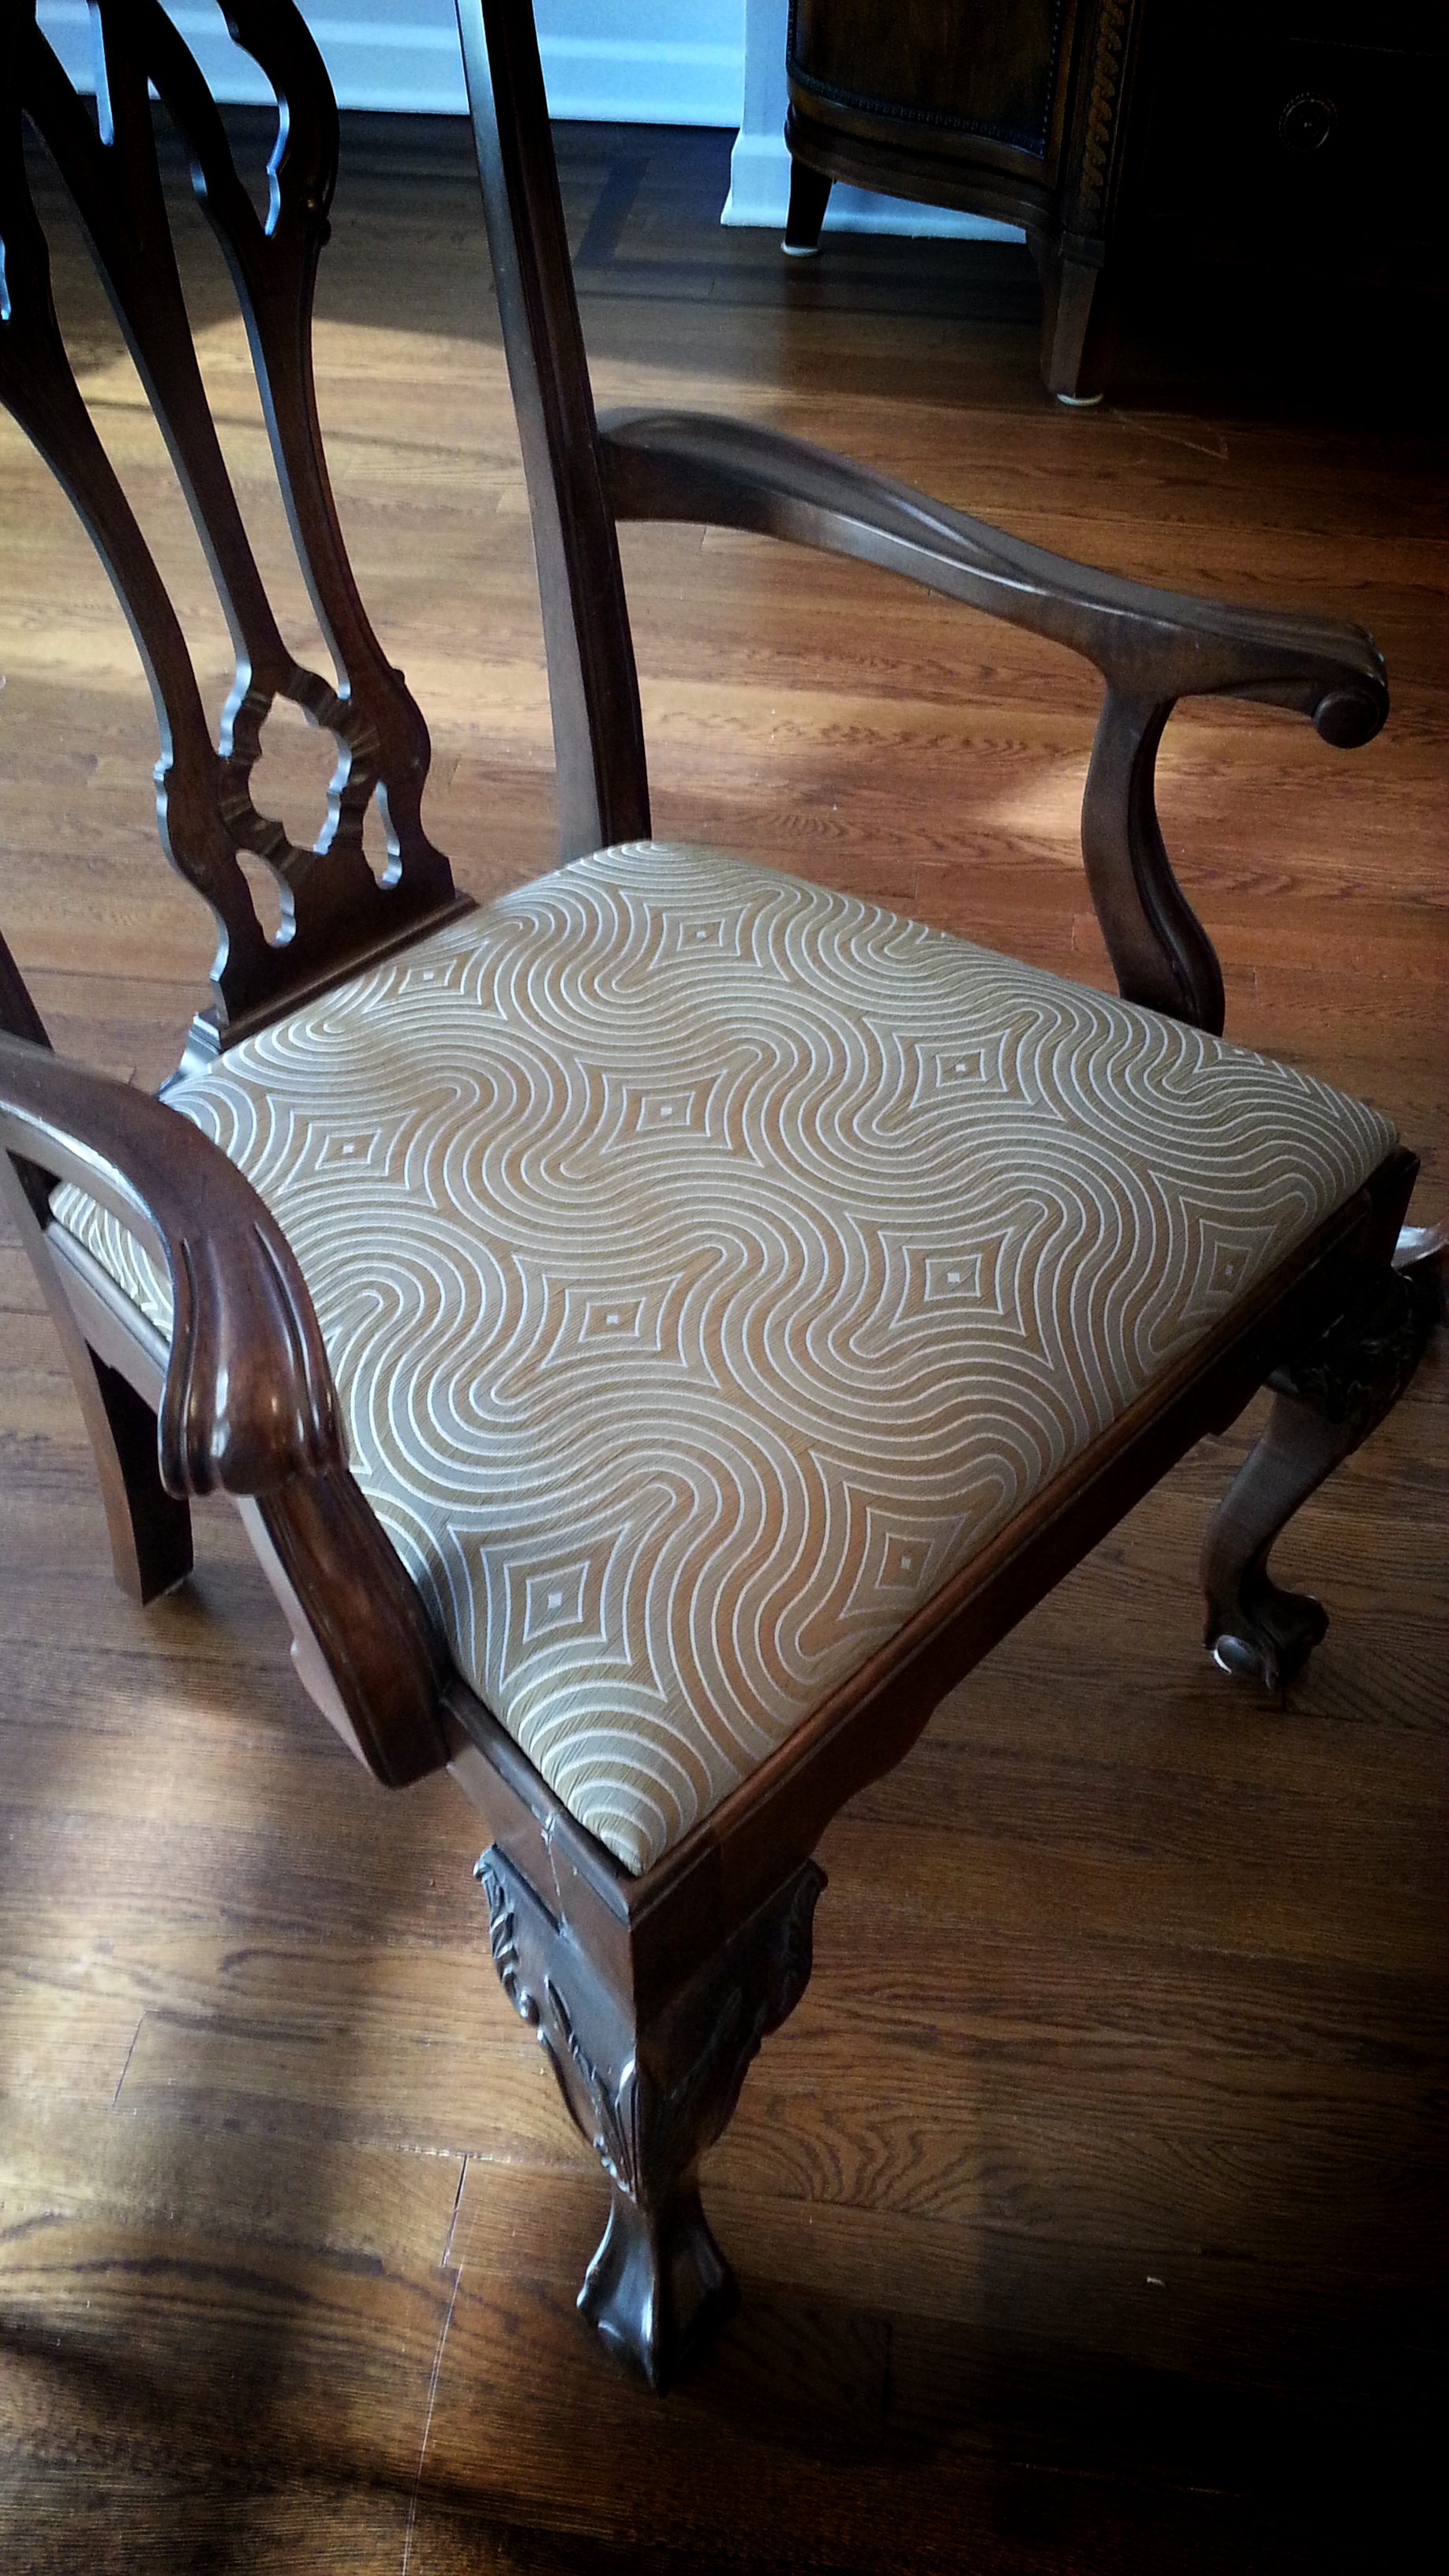 We recovered these antique chairs with a fabric that echoes the chair's curves and style.